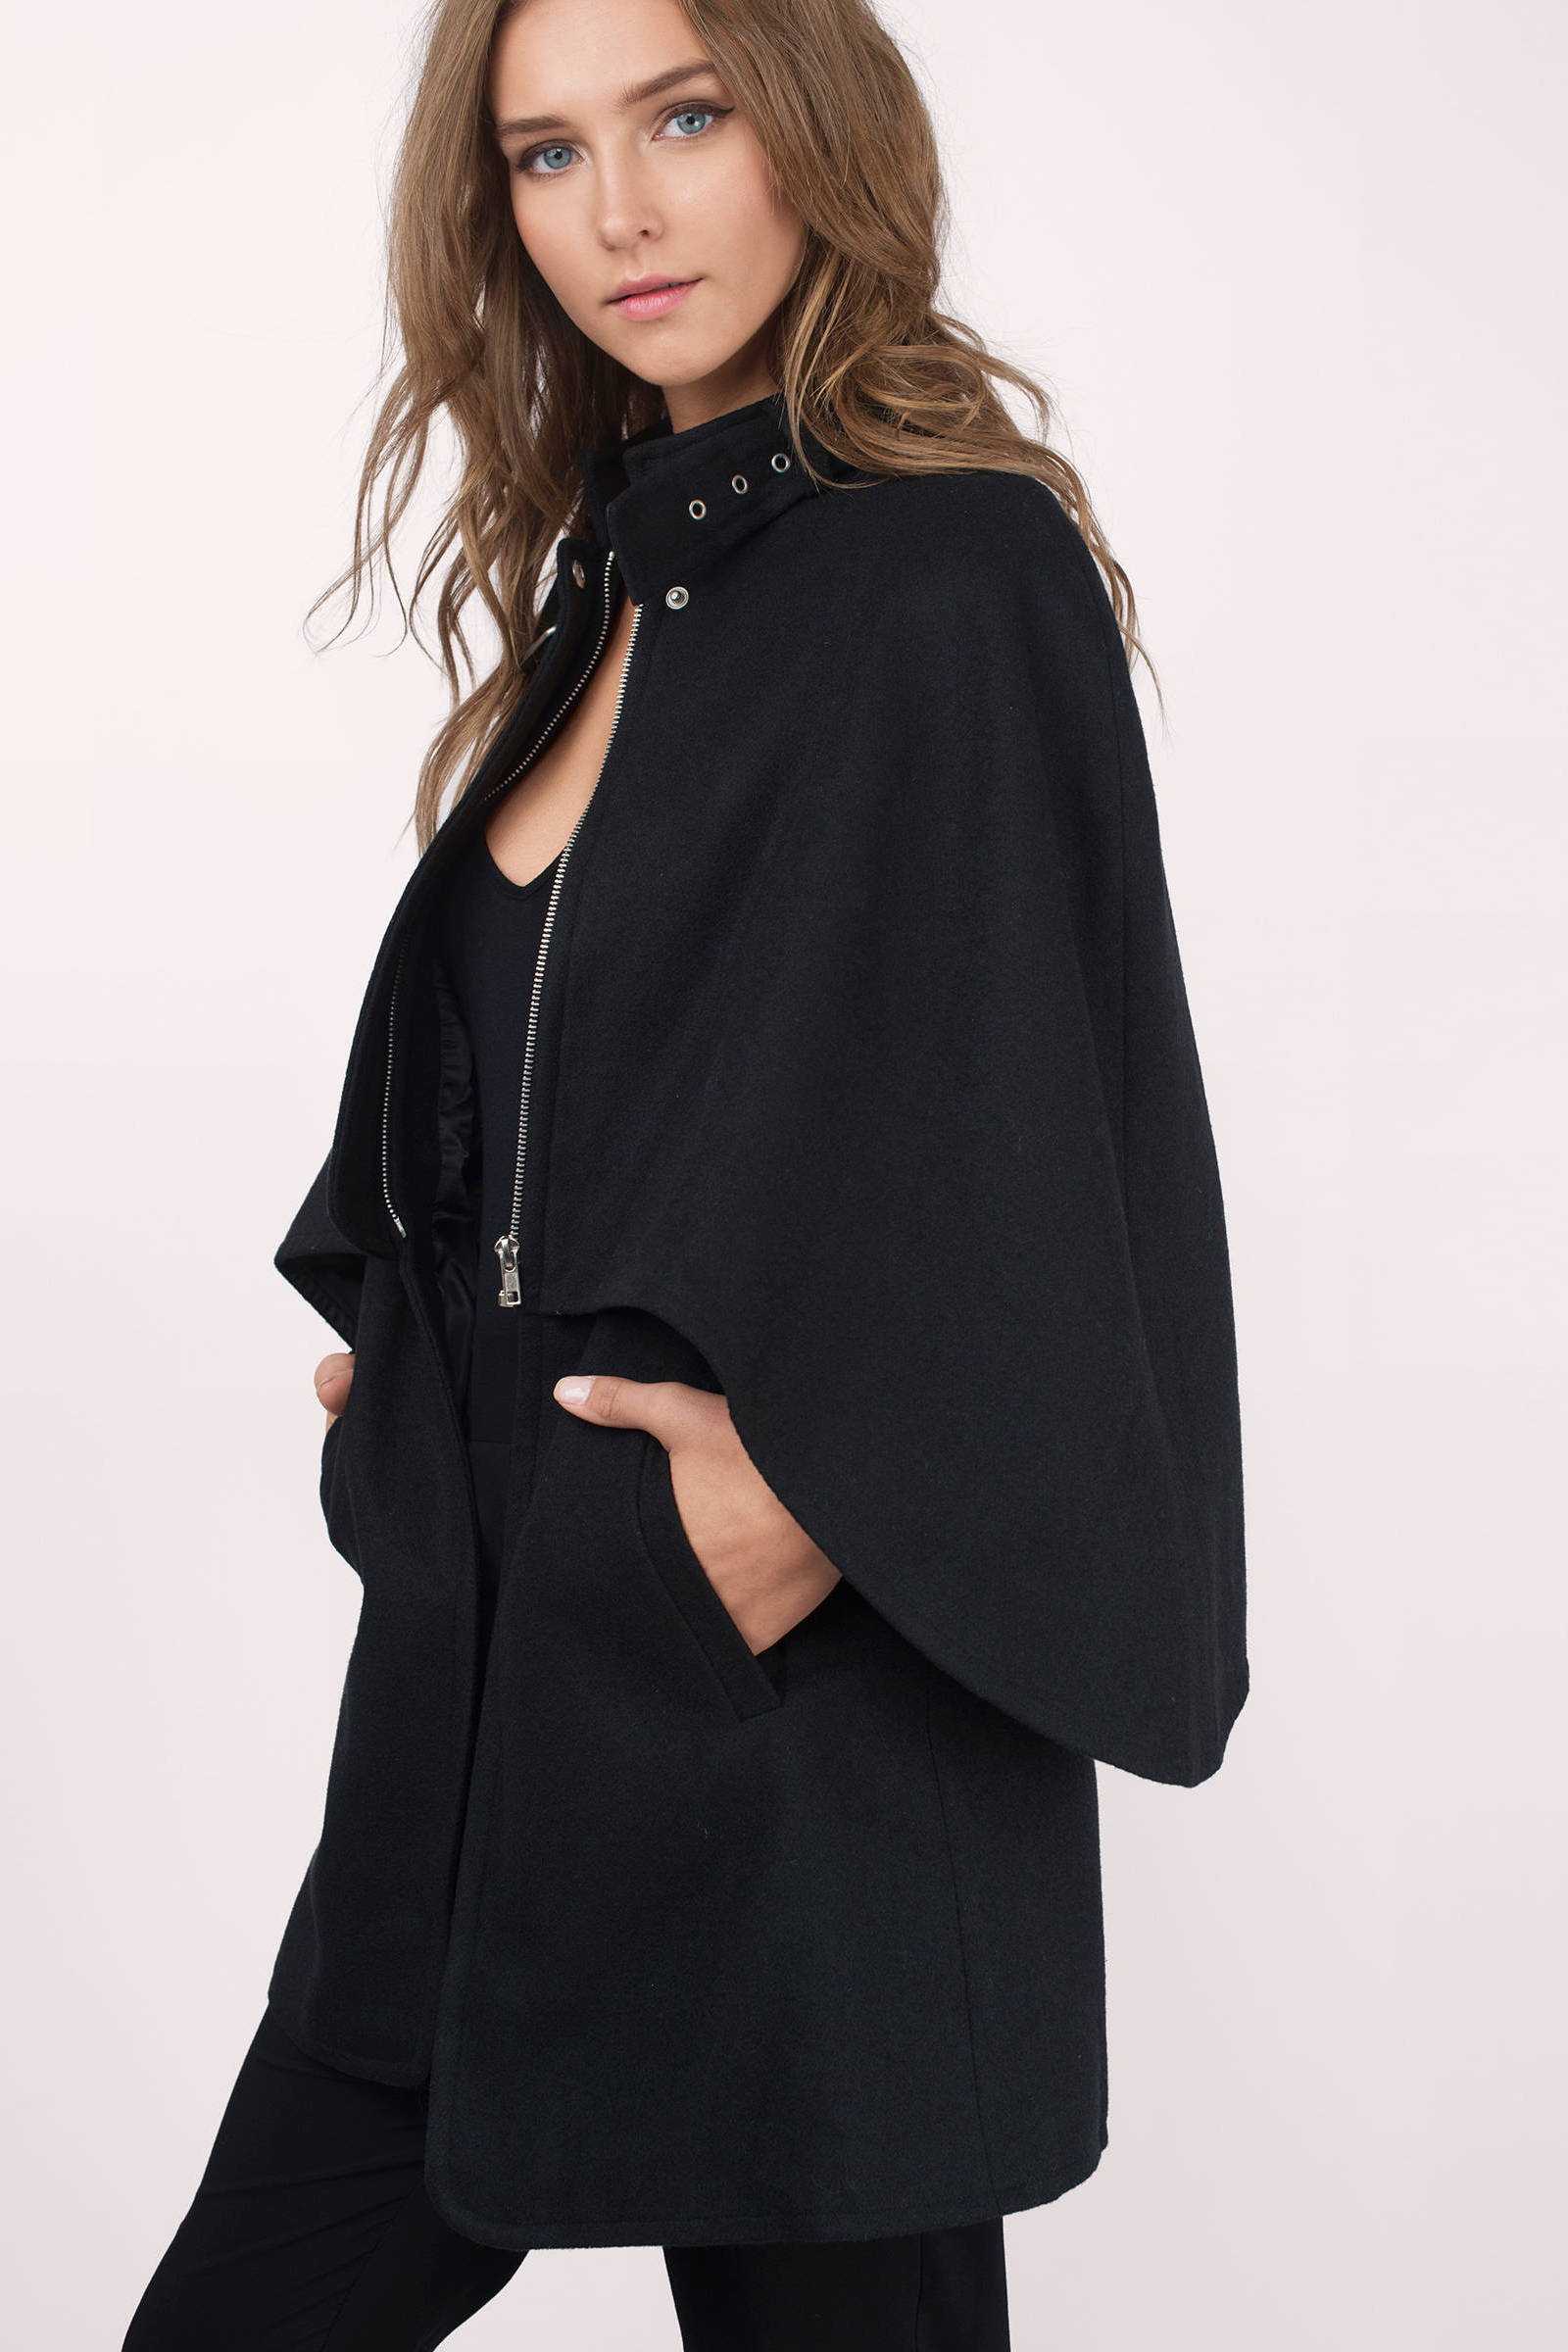 Cheap Black Coat - Black Coat - Cape Coat - $51.00